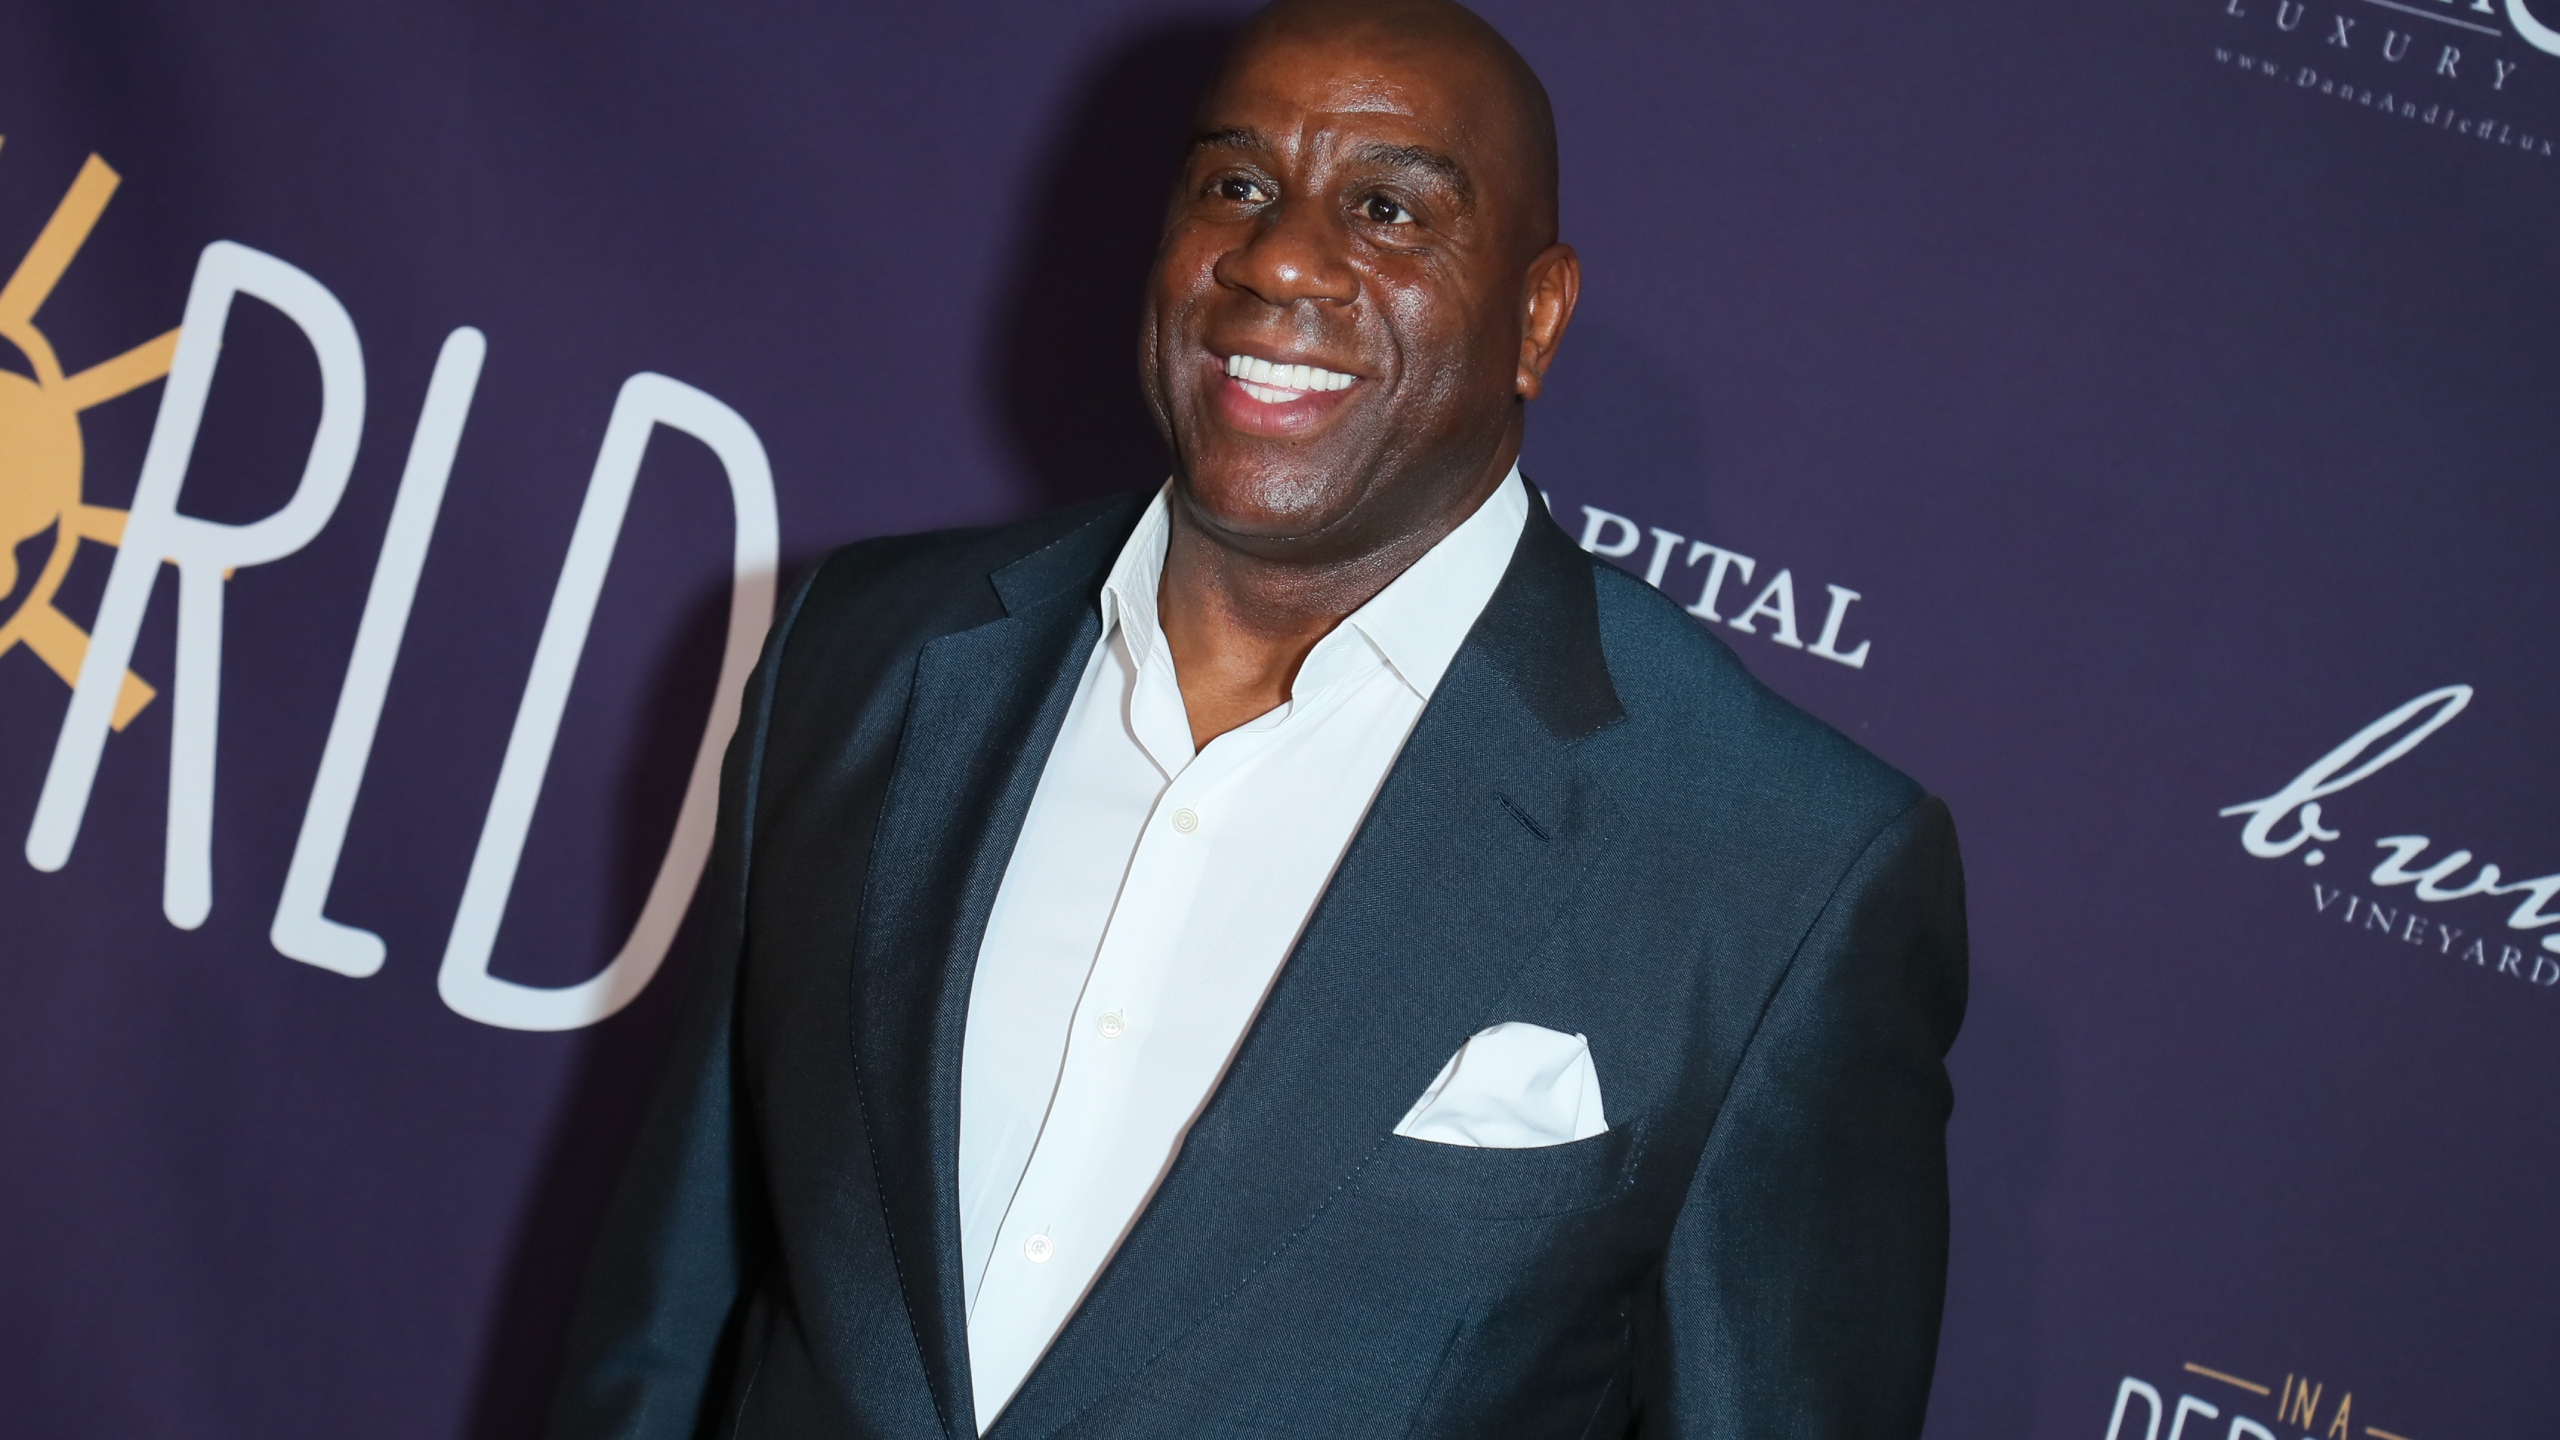 Earvin Magic Johnson arrives at The Jeremy Hotel in West Hollywood for an event on March 3, 2019. (Leon Bennett/Getty Images)